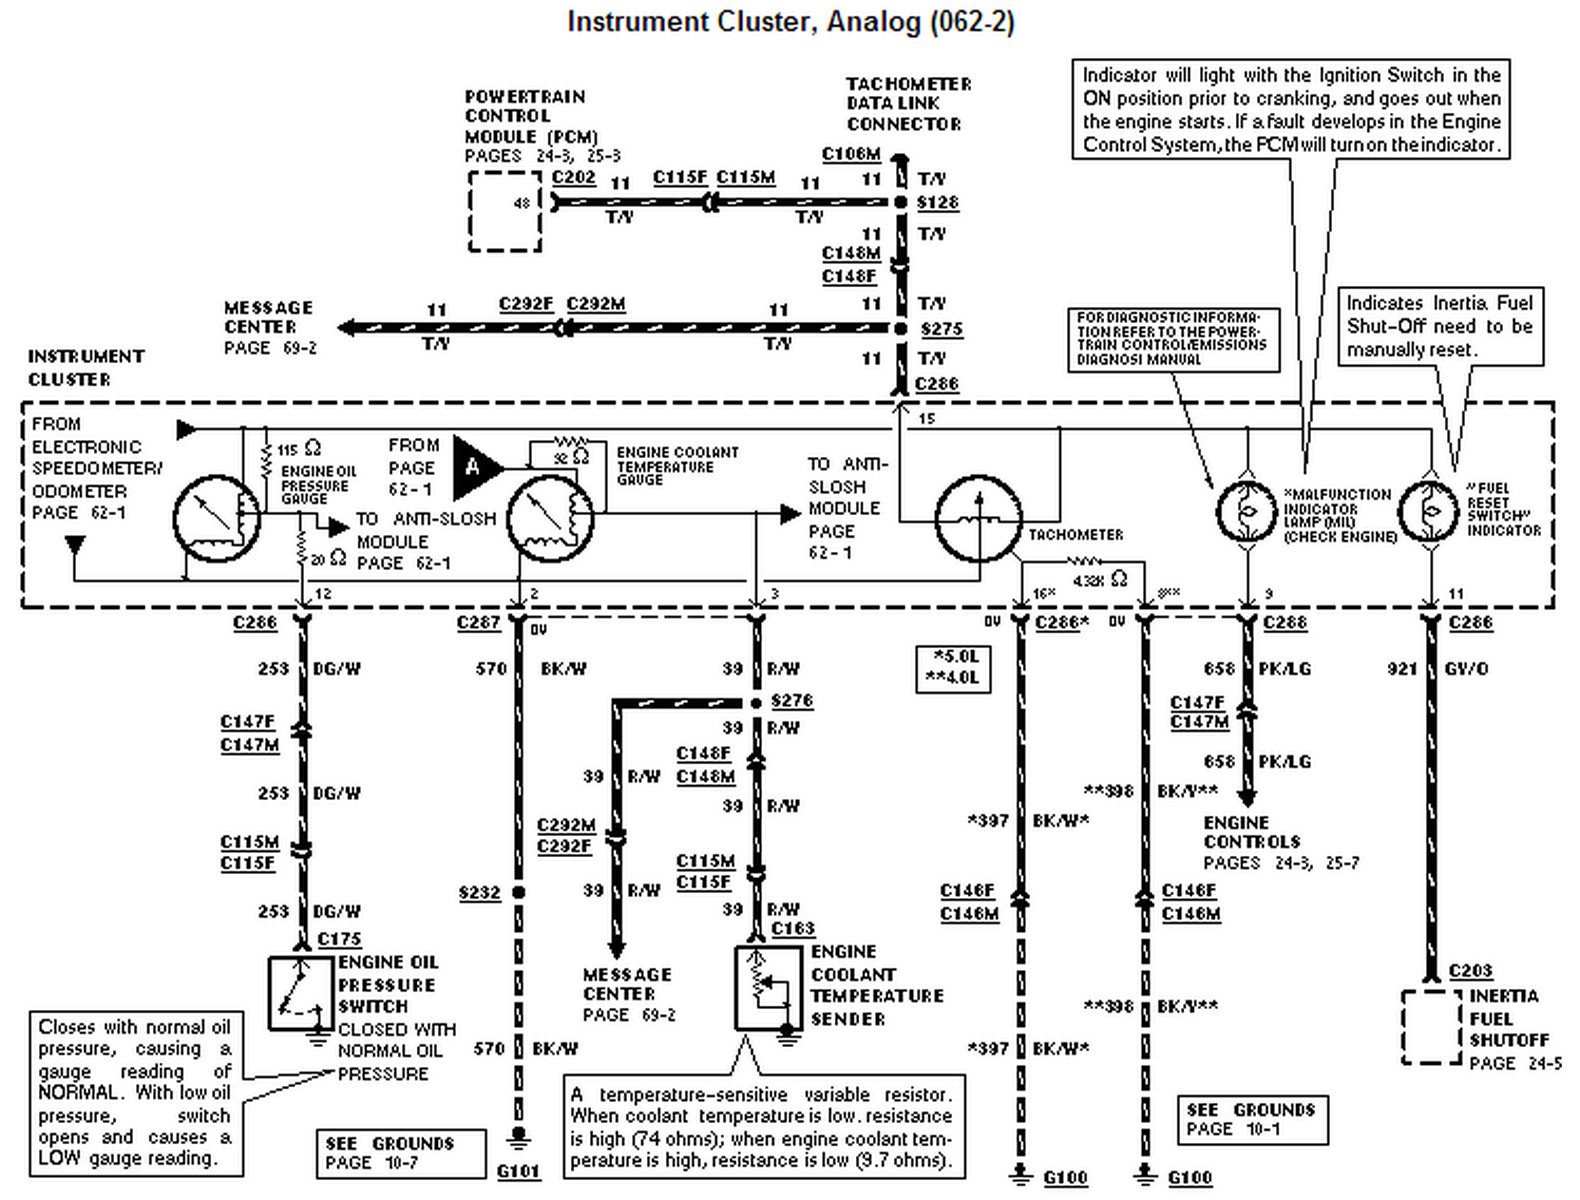 pic 5734001667949674903 1600x1200 2015 ford explorer wiring diagram 2015 ford explorer body \u2022 wiring 1995 ford explorer wiring diagram at soozxer.org